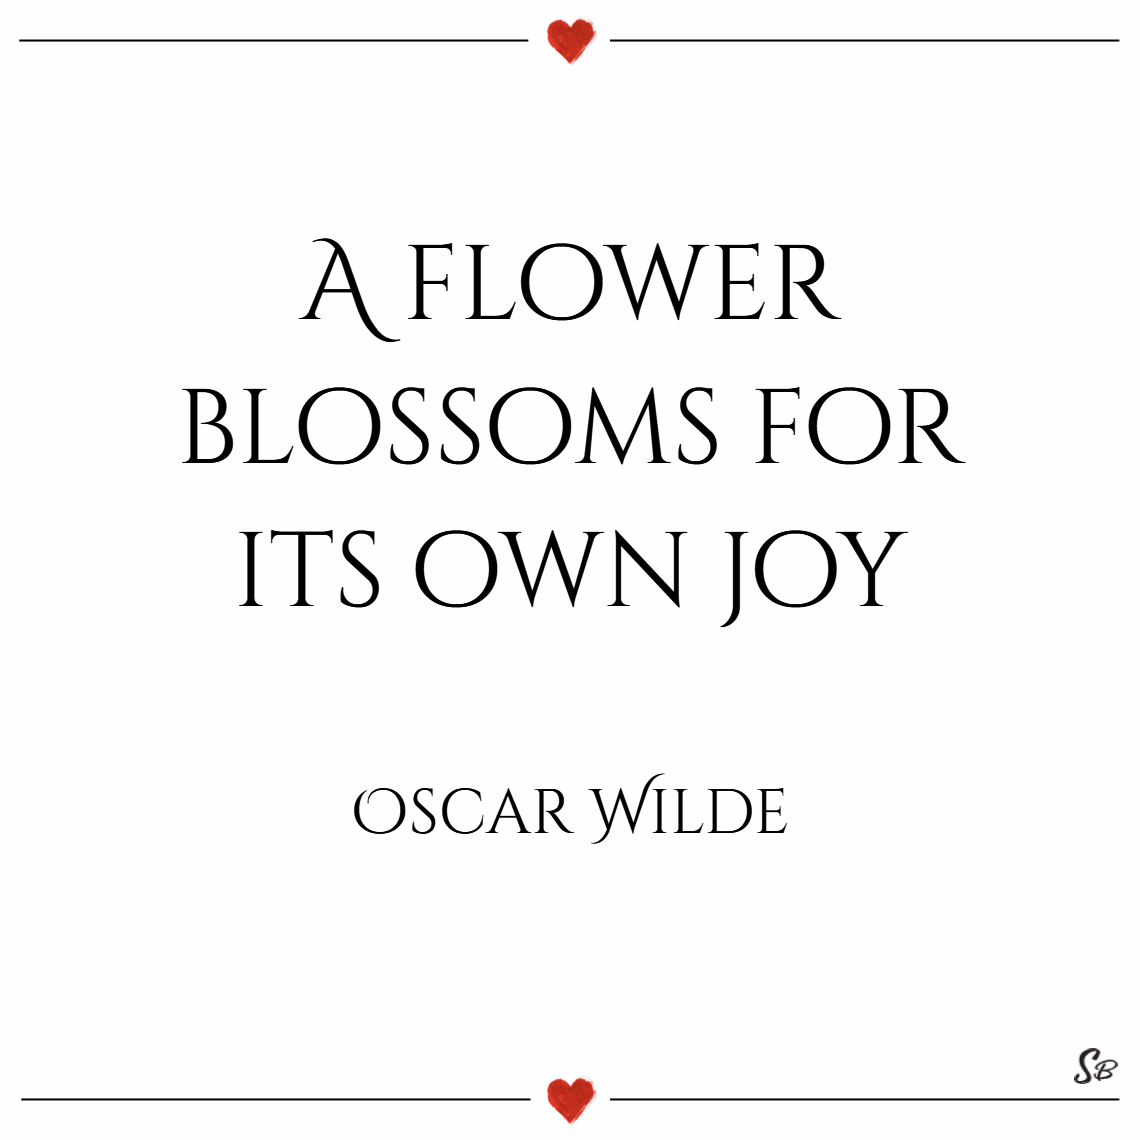 A flower blossoms for its own joy. – oscar wilde